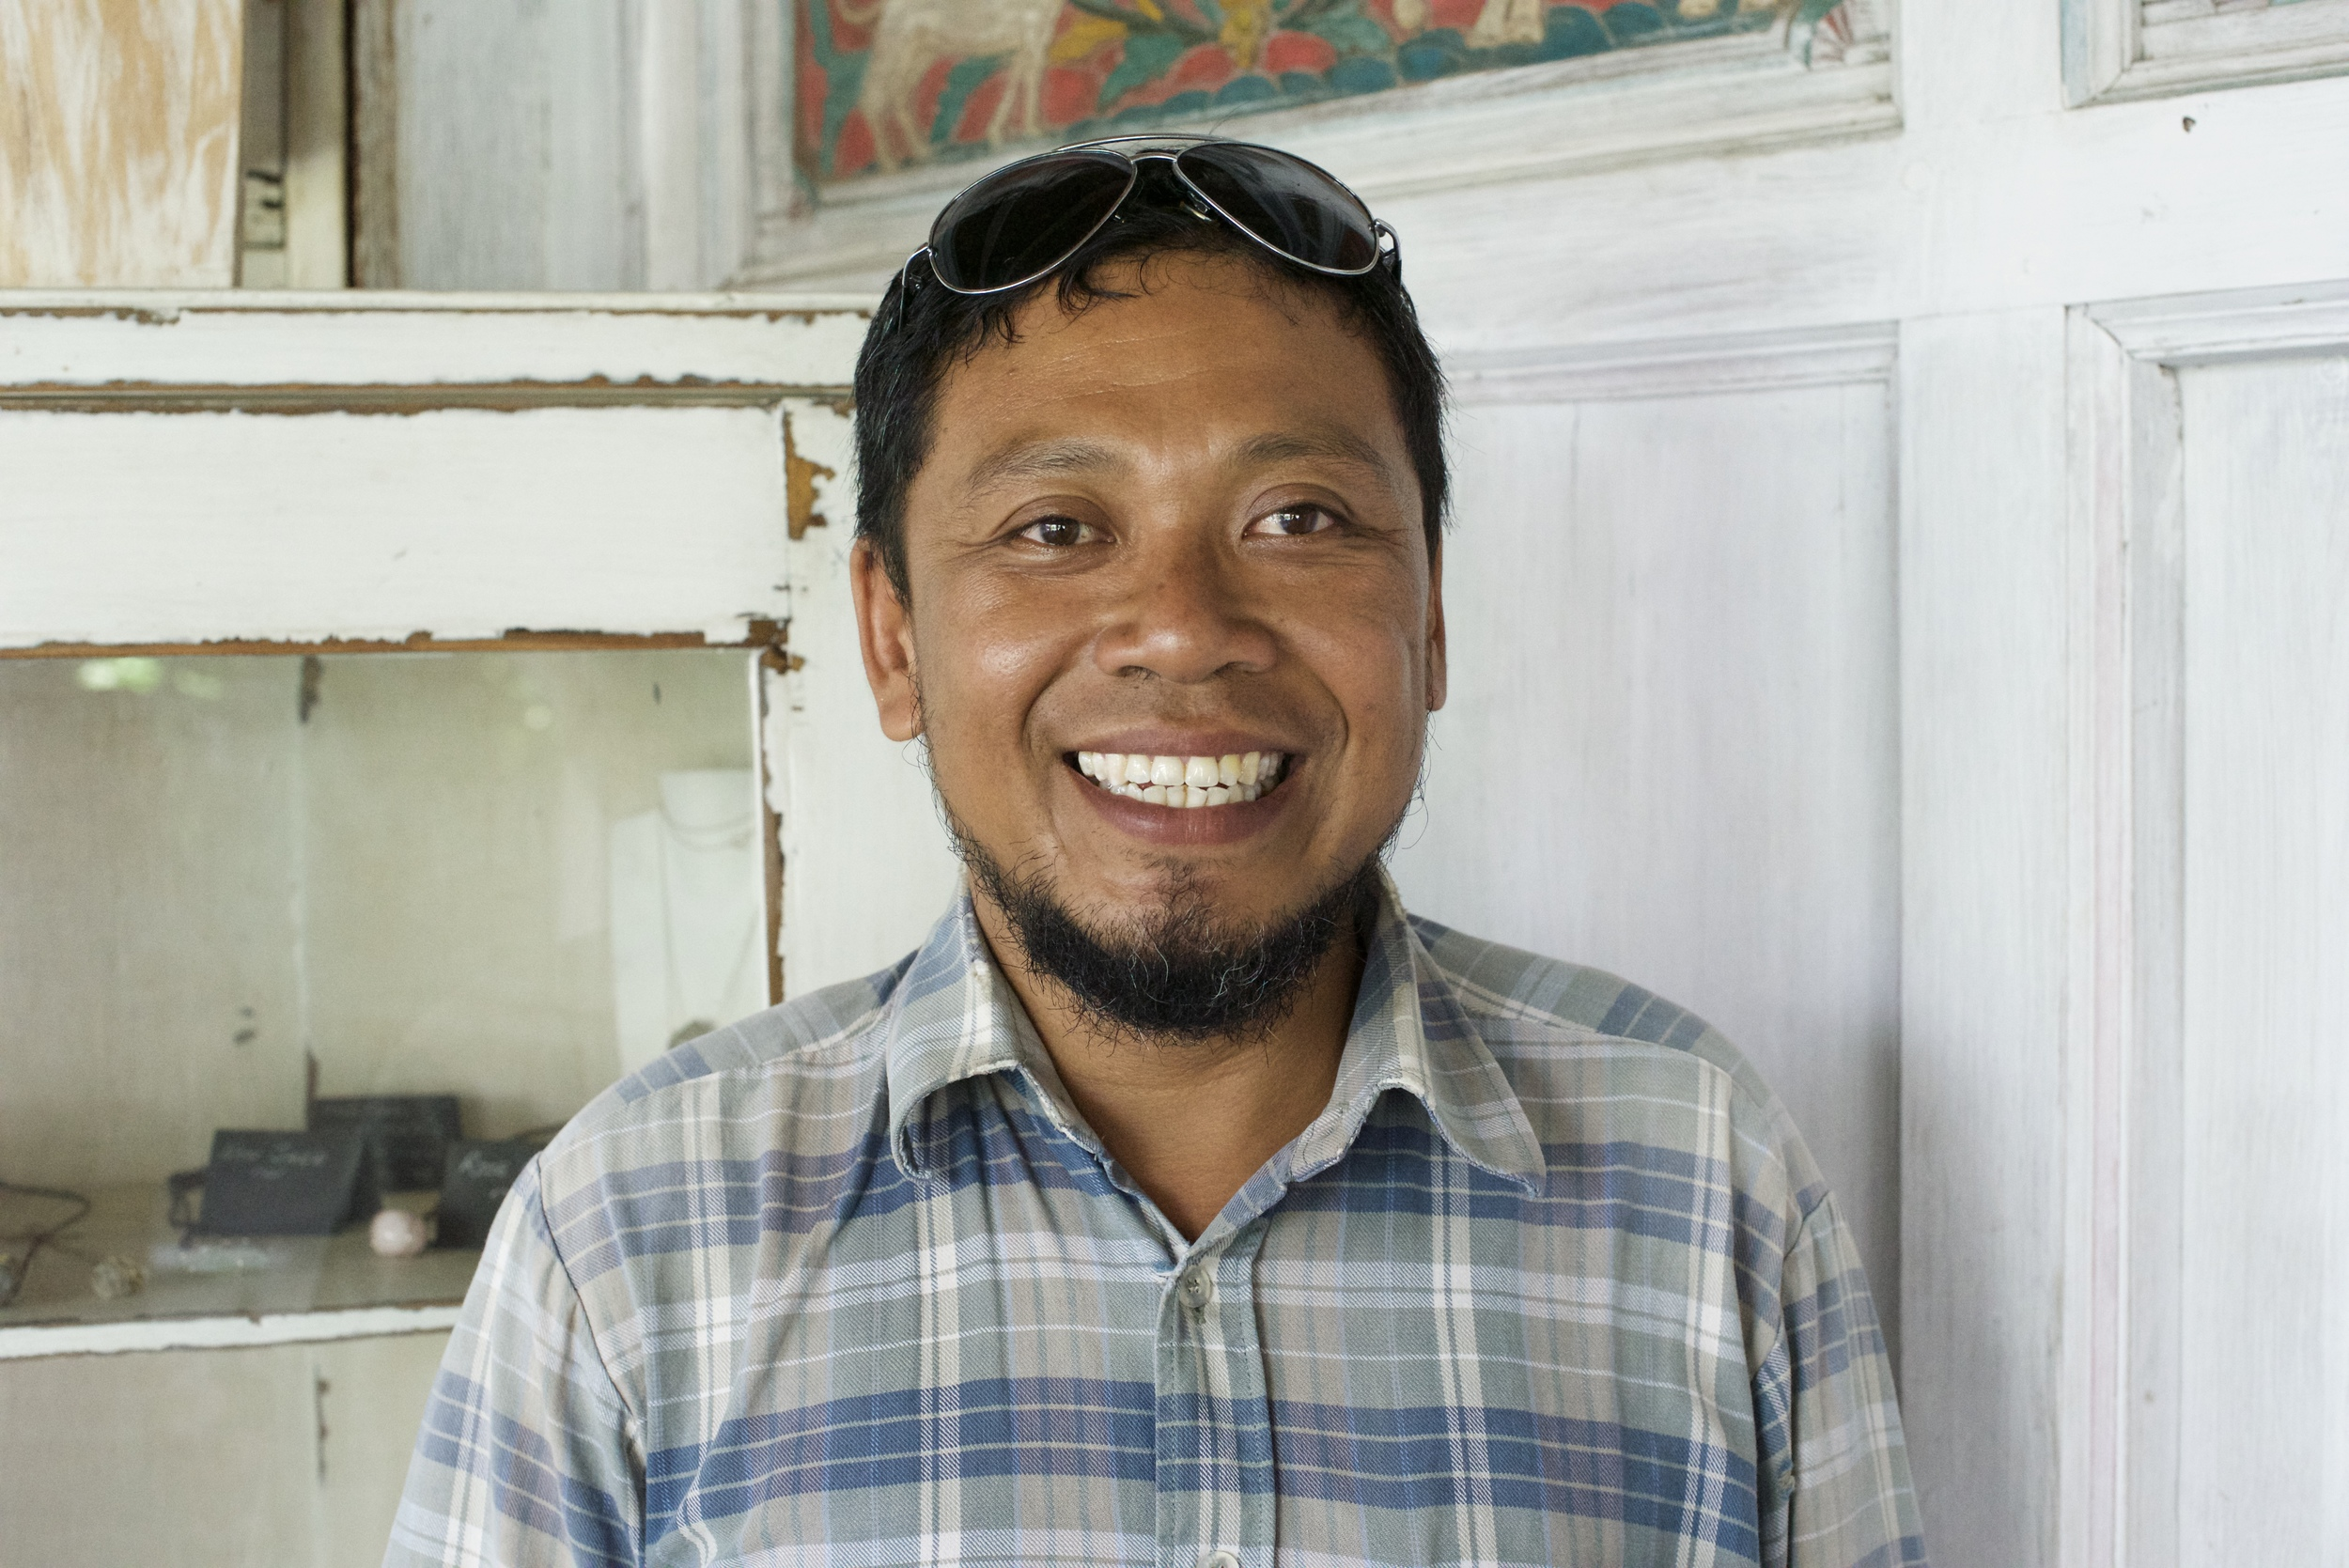 Meet Gede, The Pineapple House Villa manager.  This man was the epitome of gentleness.  Always bowing his head when he would shake your hand, his smile was infectious.  He would greet you as if you were the only one in the room.  Though my interactions were limited with him, he left an indelible imprint on me.